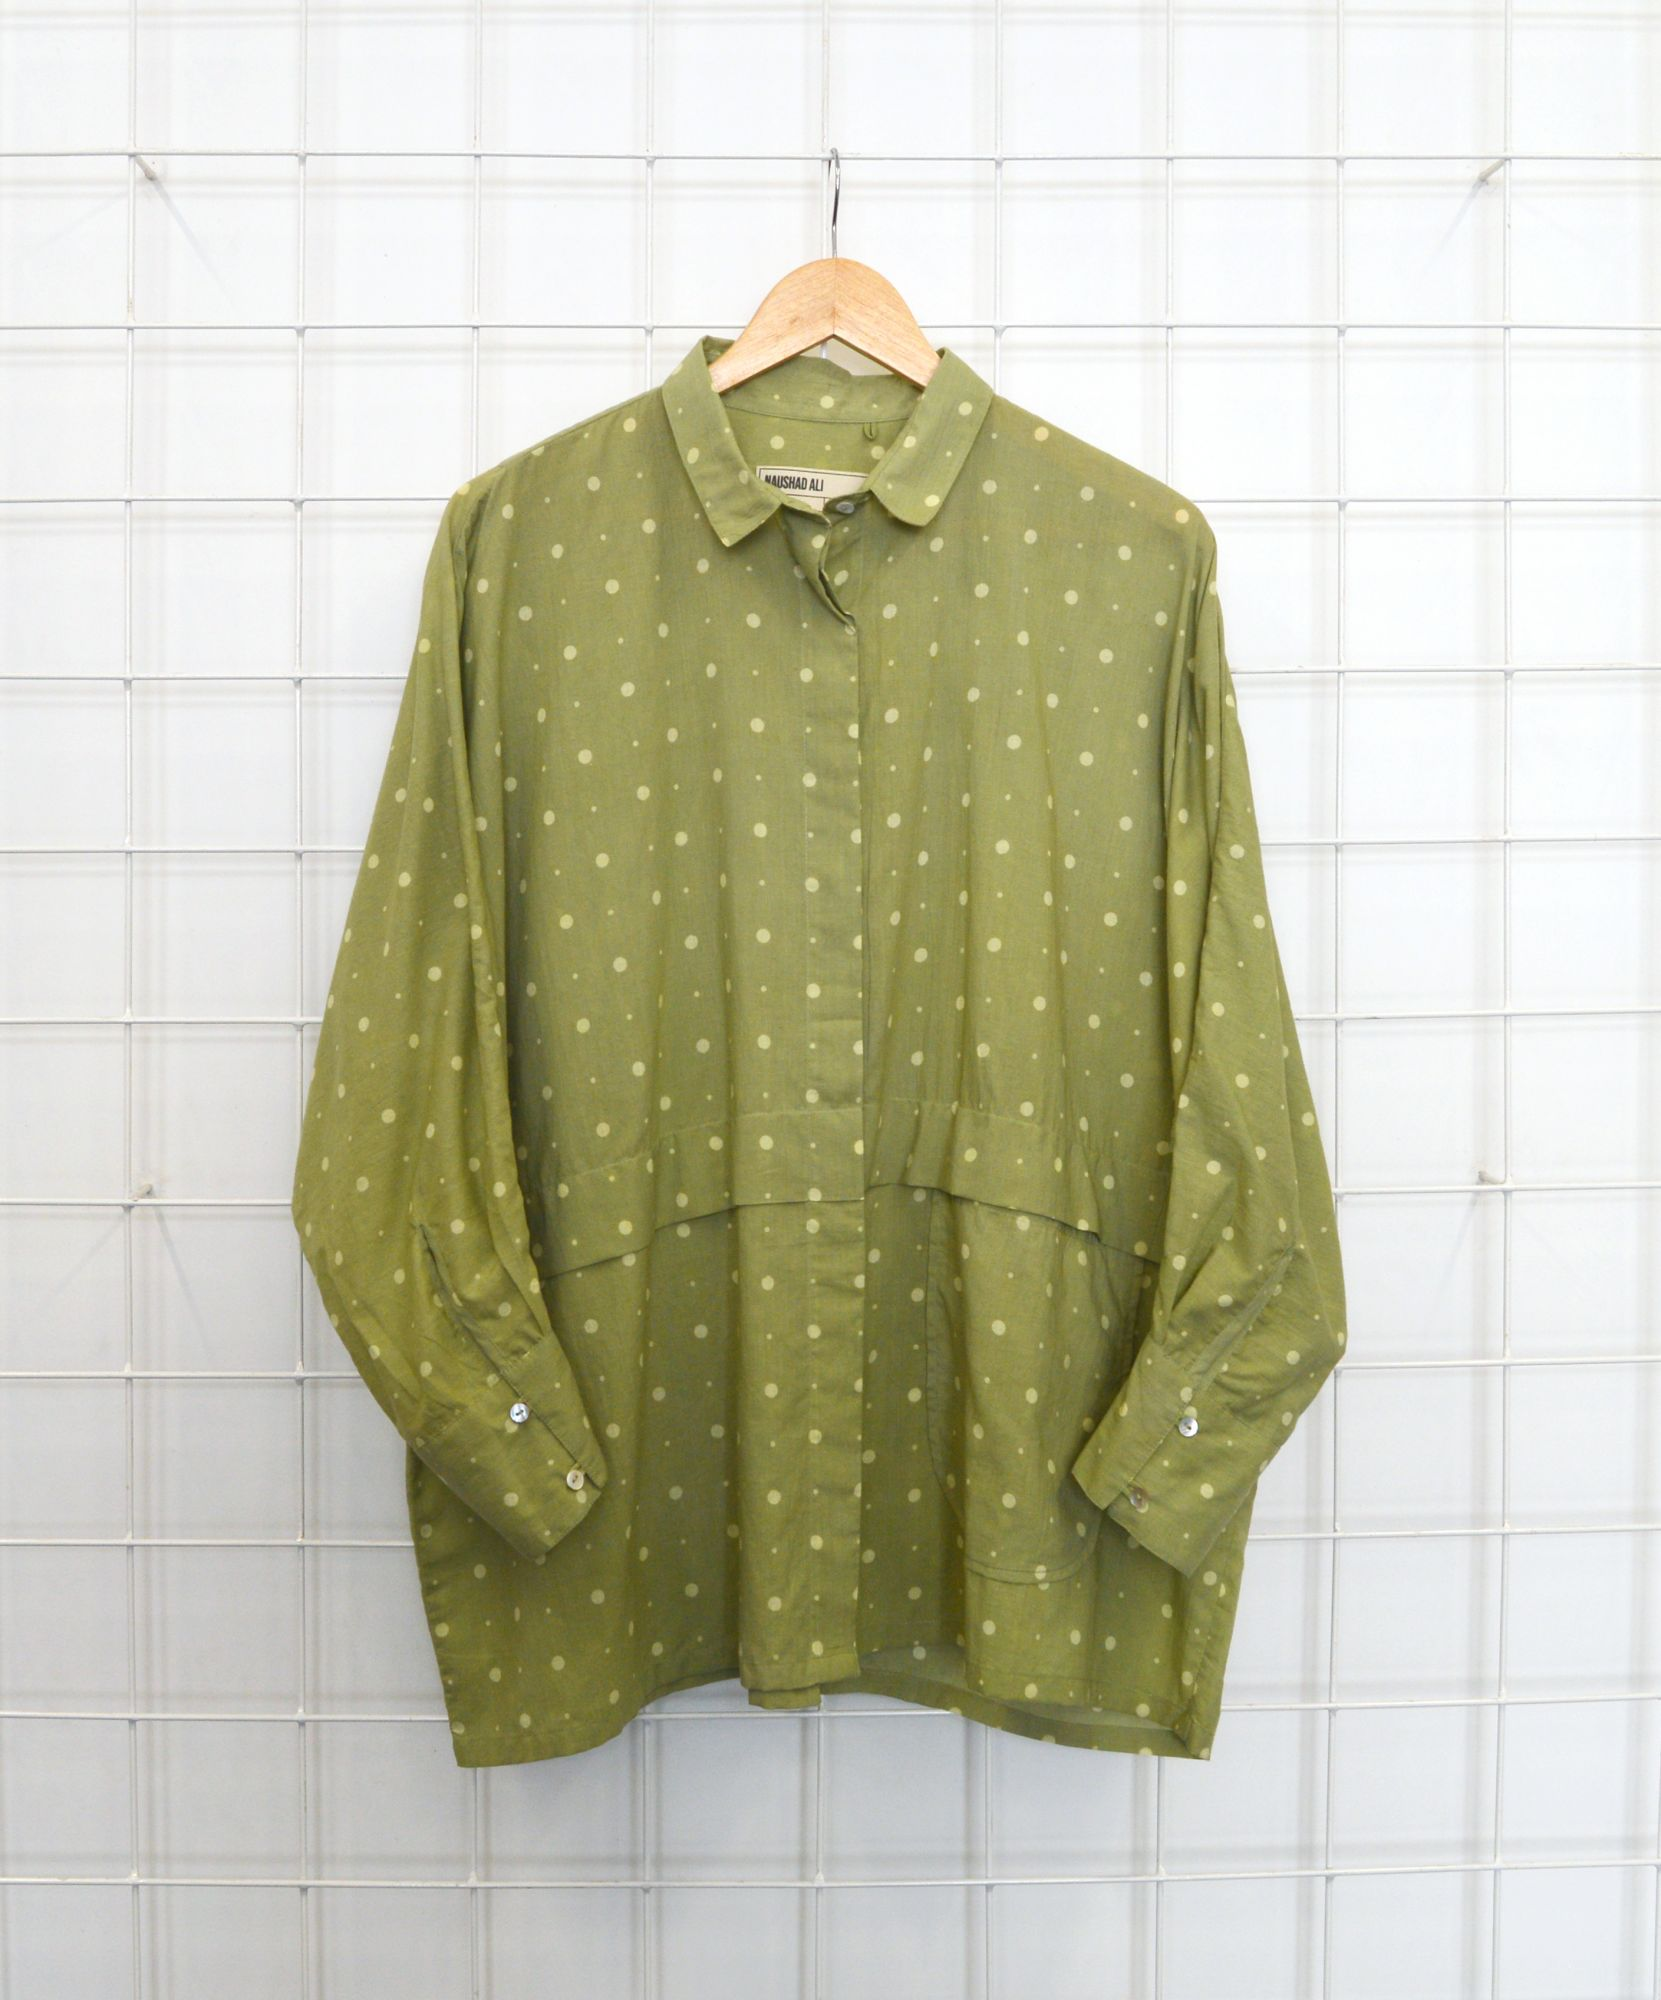 Zap Shirt - Green